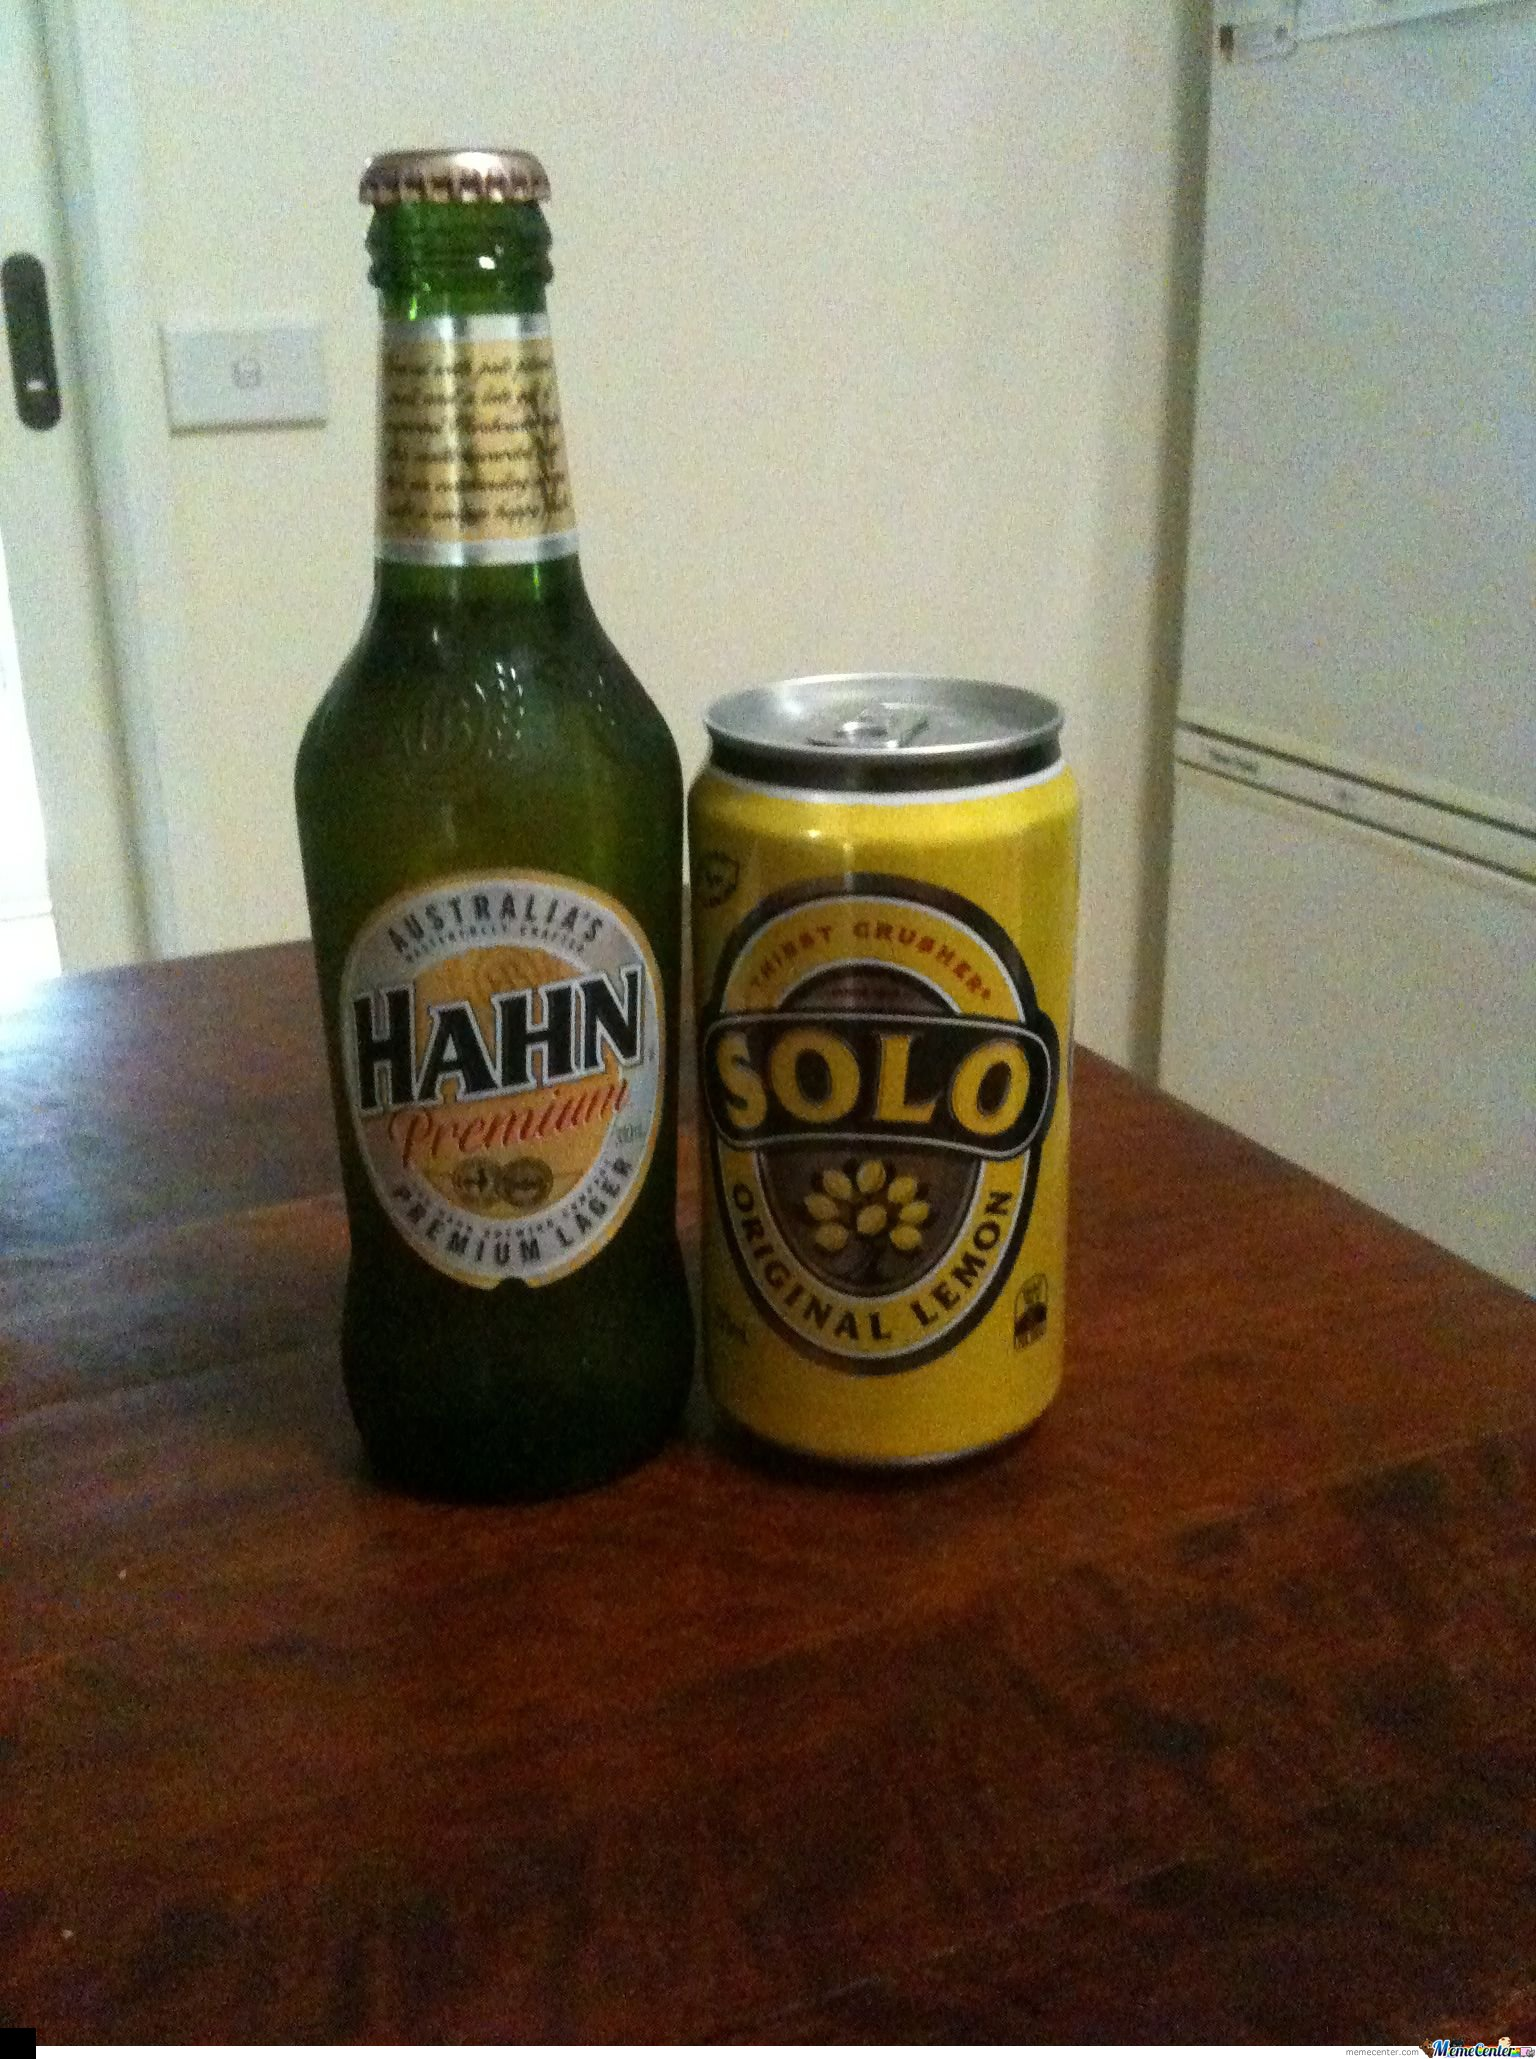 Hahn Solo is the best